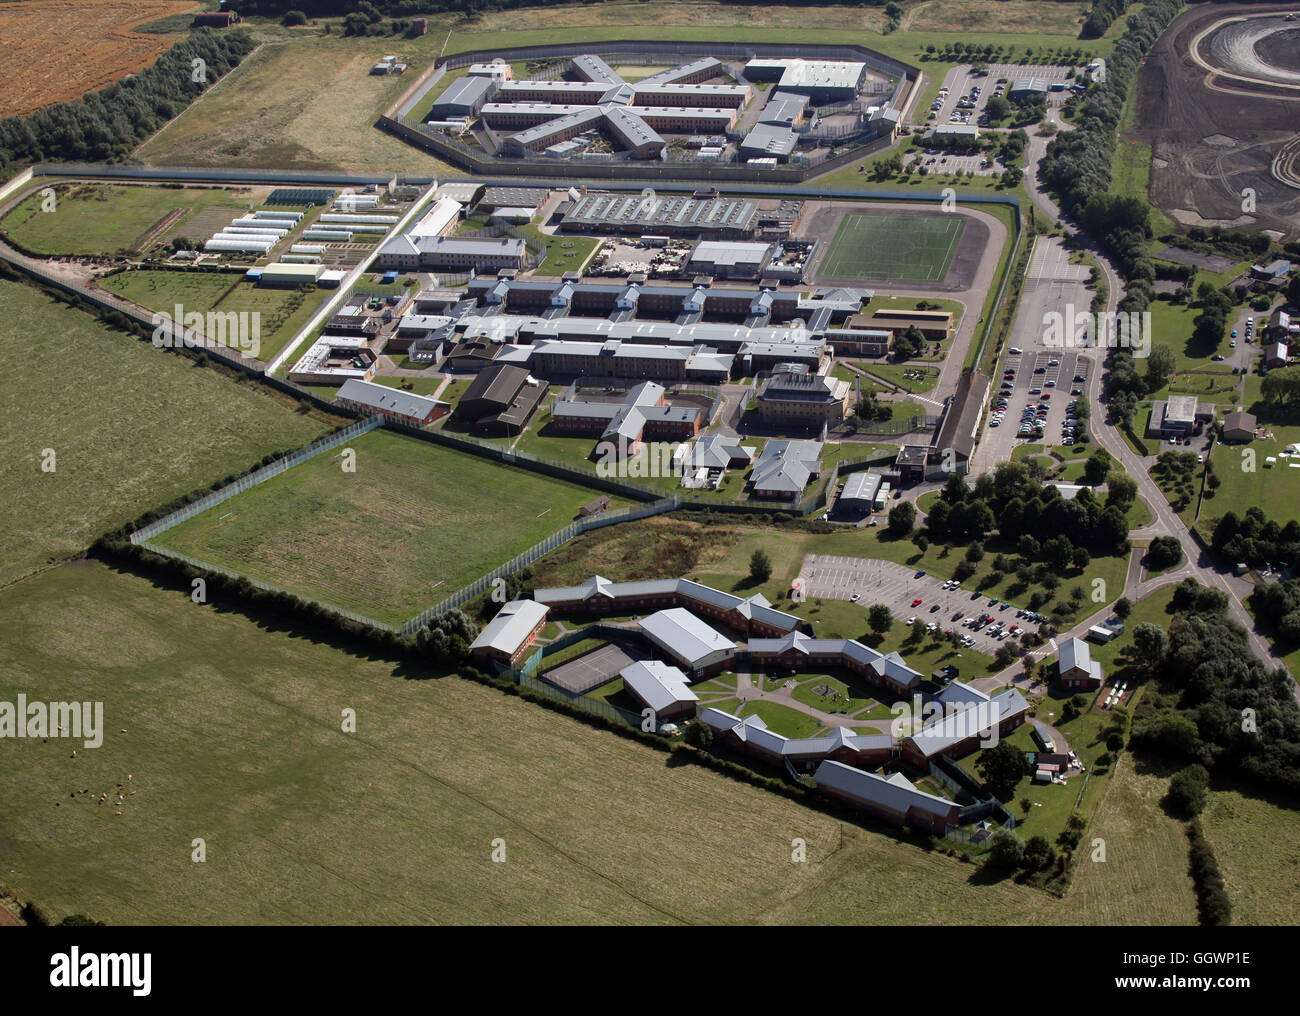 aerial view of Rainsbrook Secure Training Centre, HMP Onley & HMP Rye Hill near Rugby, UK - Stock Image